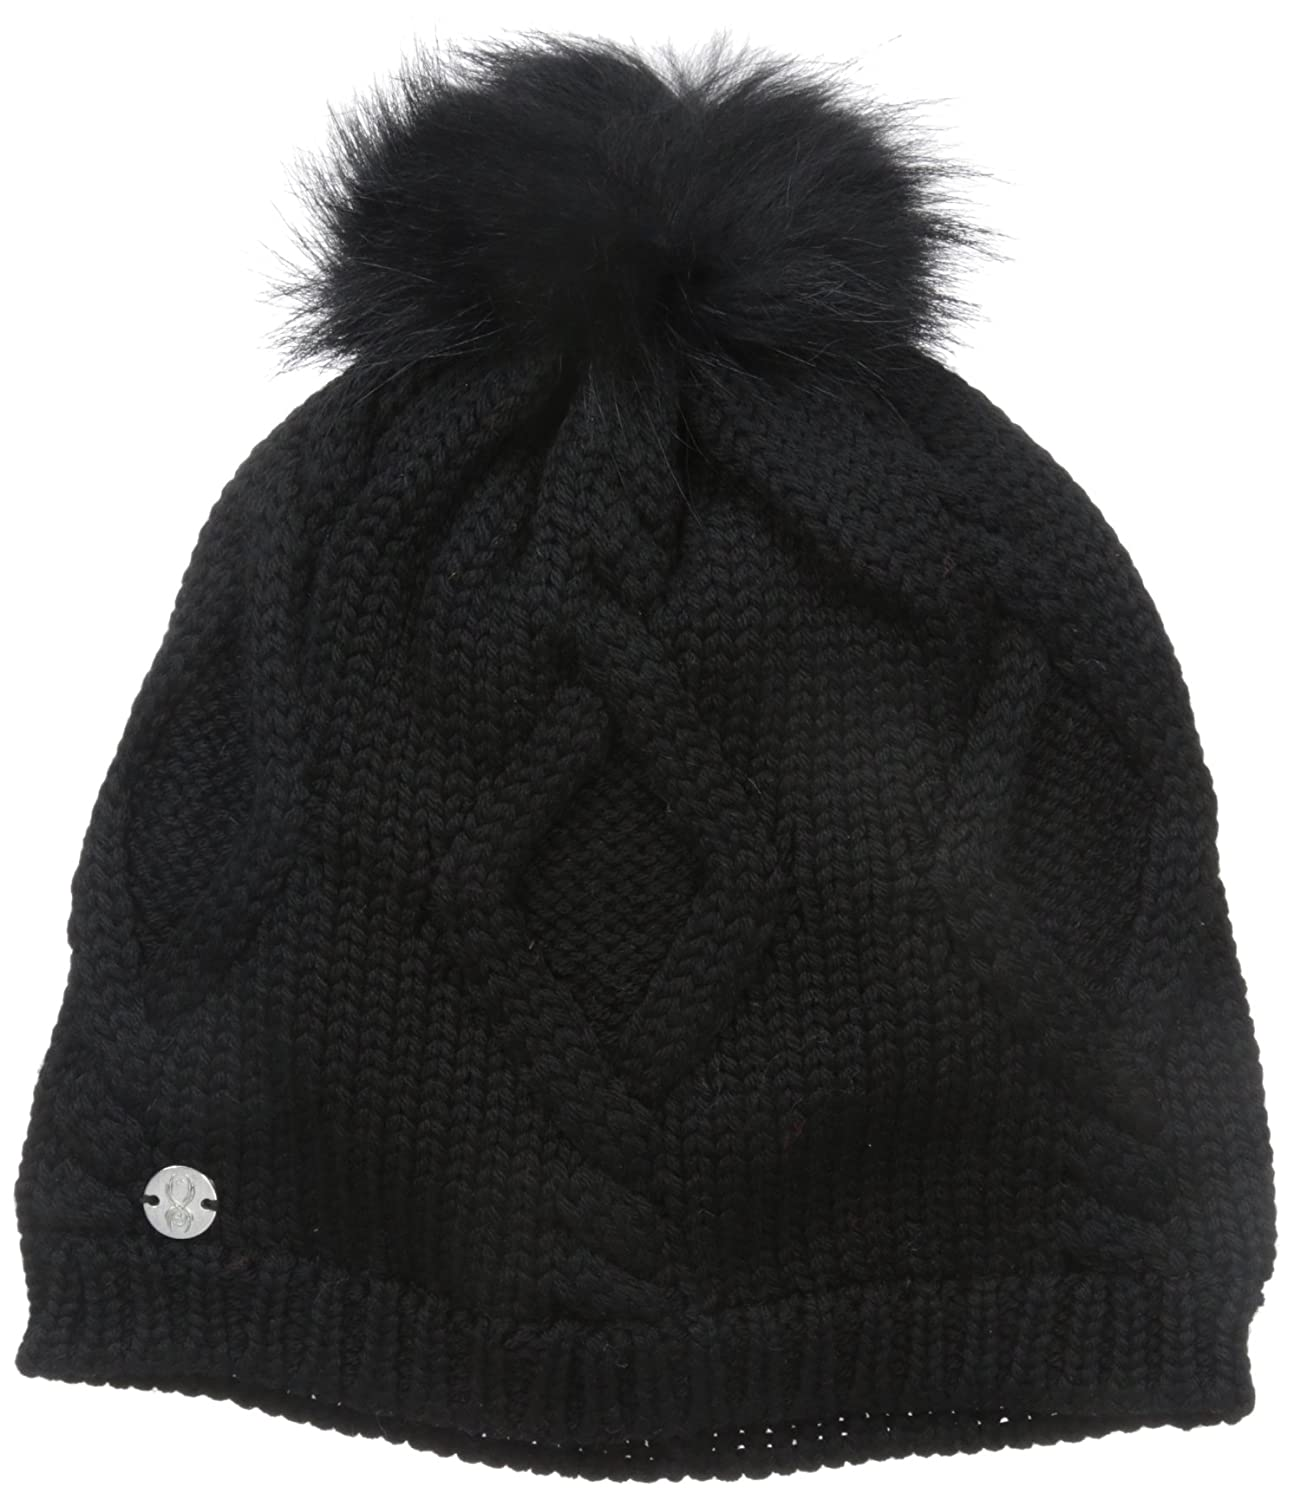 9ed2f69dd8c5d6 Amazon.com : Spyder Women's Knit Wit Hat, Black, One Size : Clothing